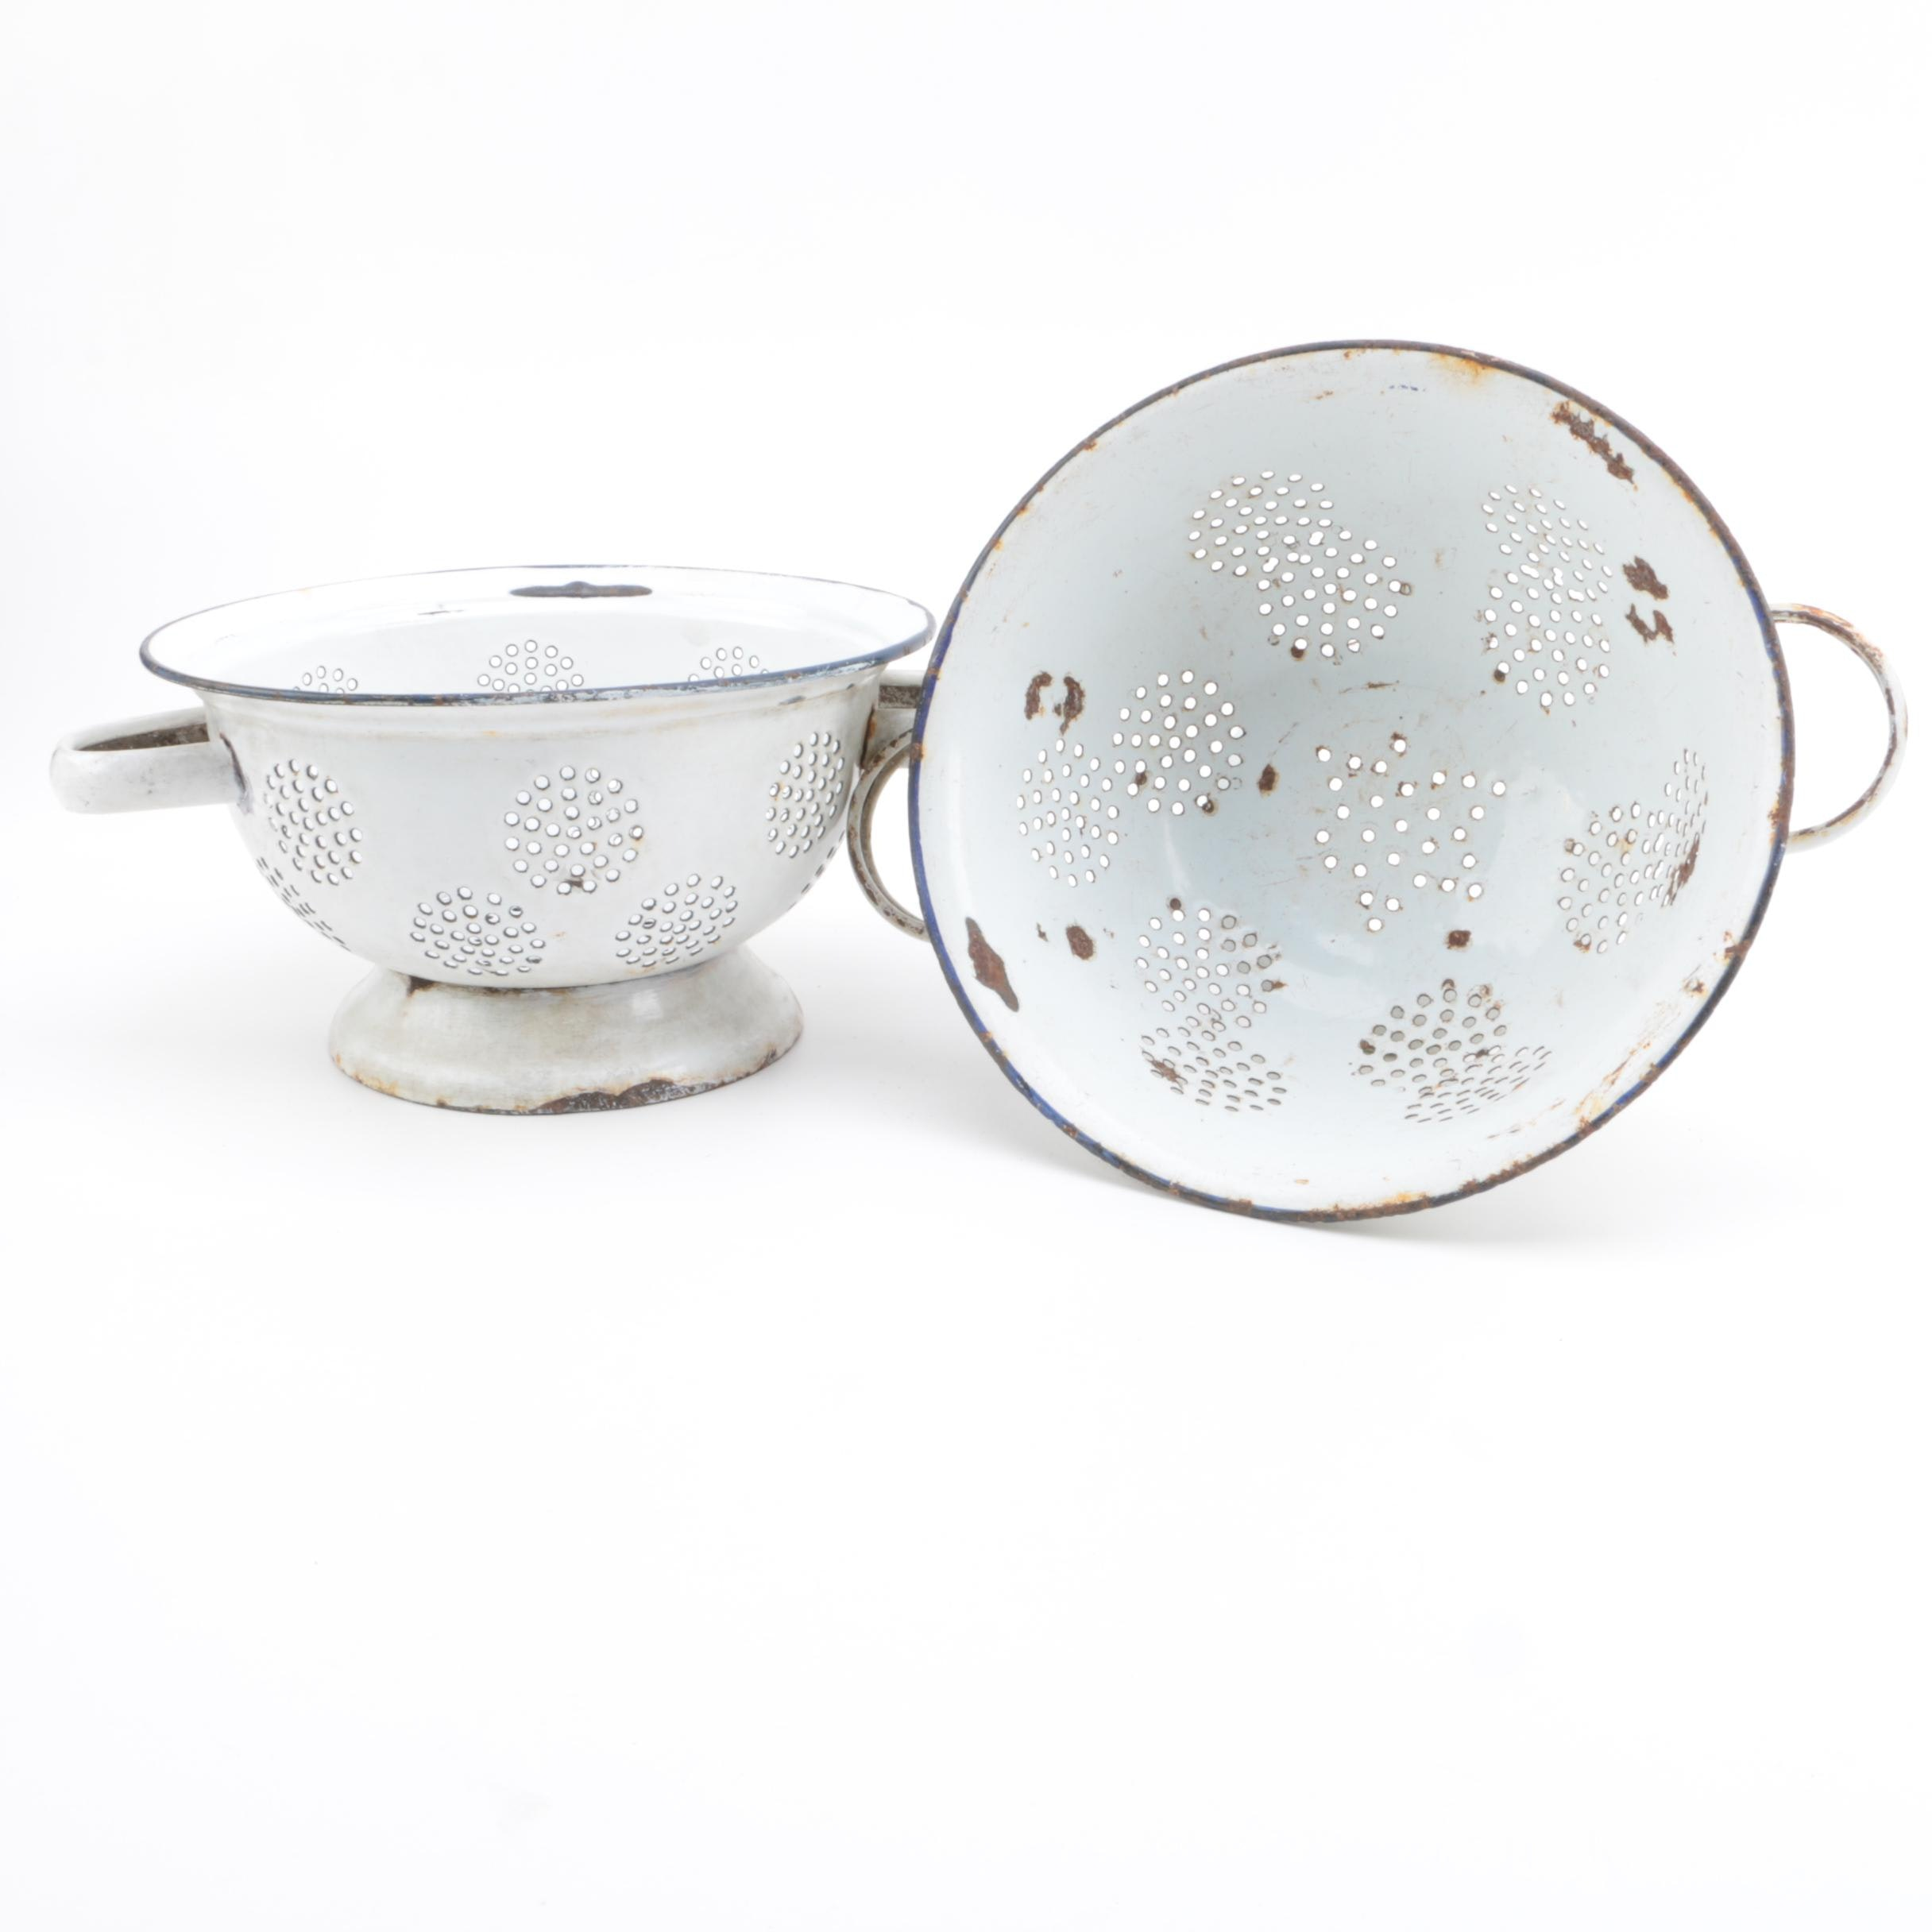 Pair of Vintage White Enameled Colanders